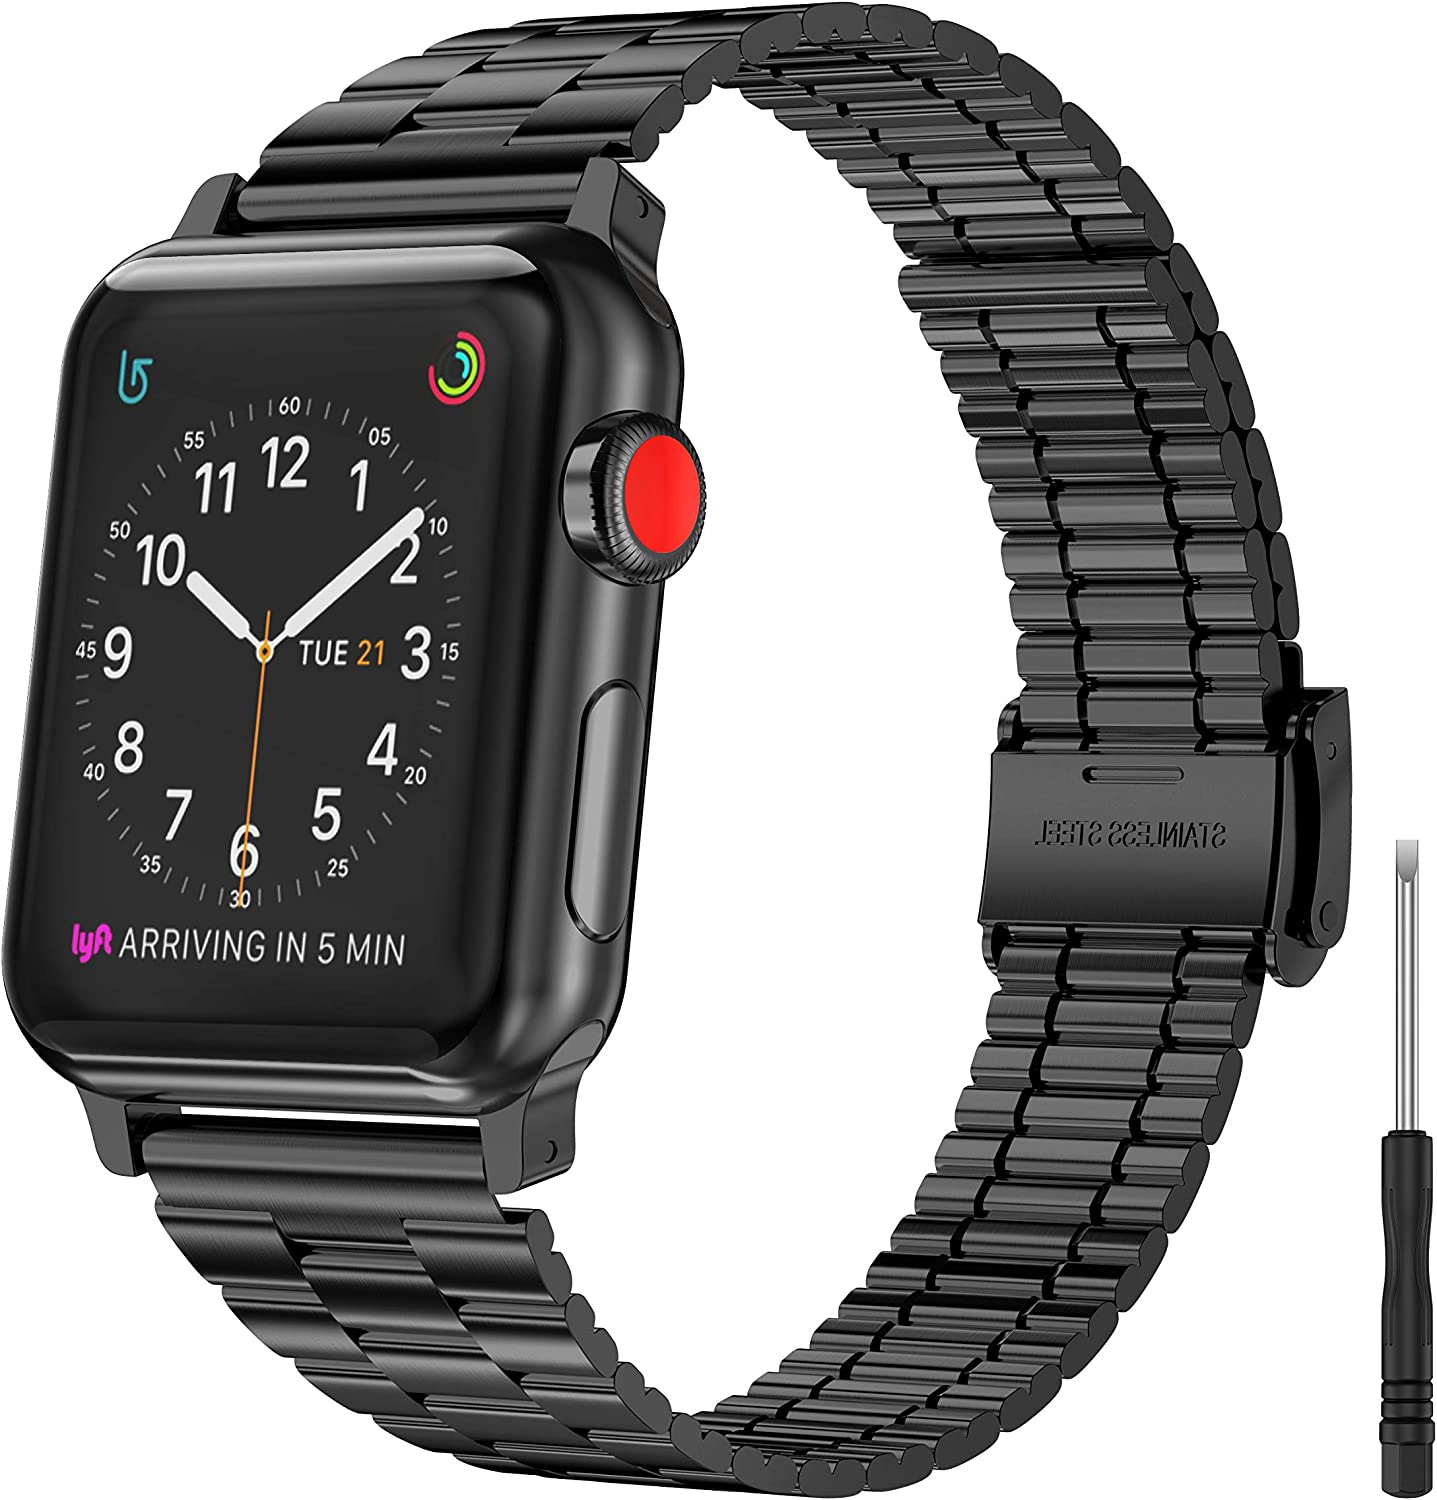 Moolia Metal Band Compatible with Apple Watch 41mm 38mm 40mm, Women Stylish Ultra-Thin Stainless Steel iWatch Wristband Strap Bracelet for iWatch Series SE 7 6 5 4 3 2 1, Black